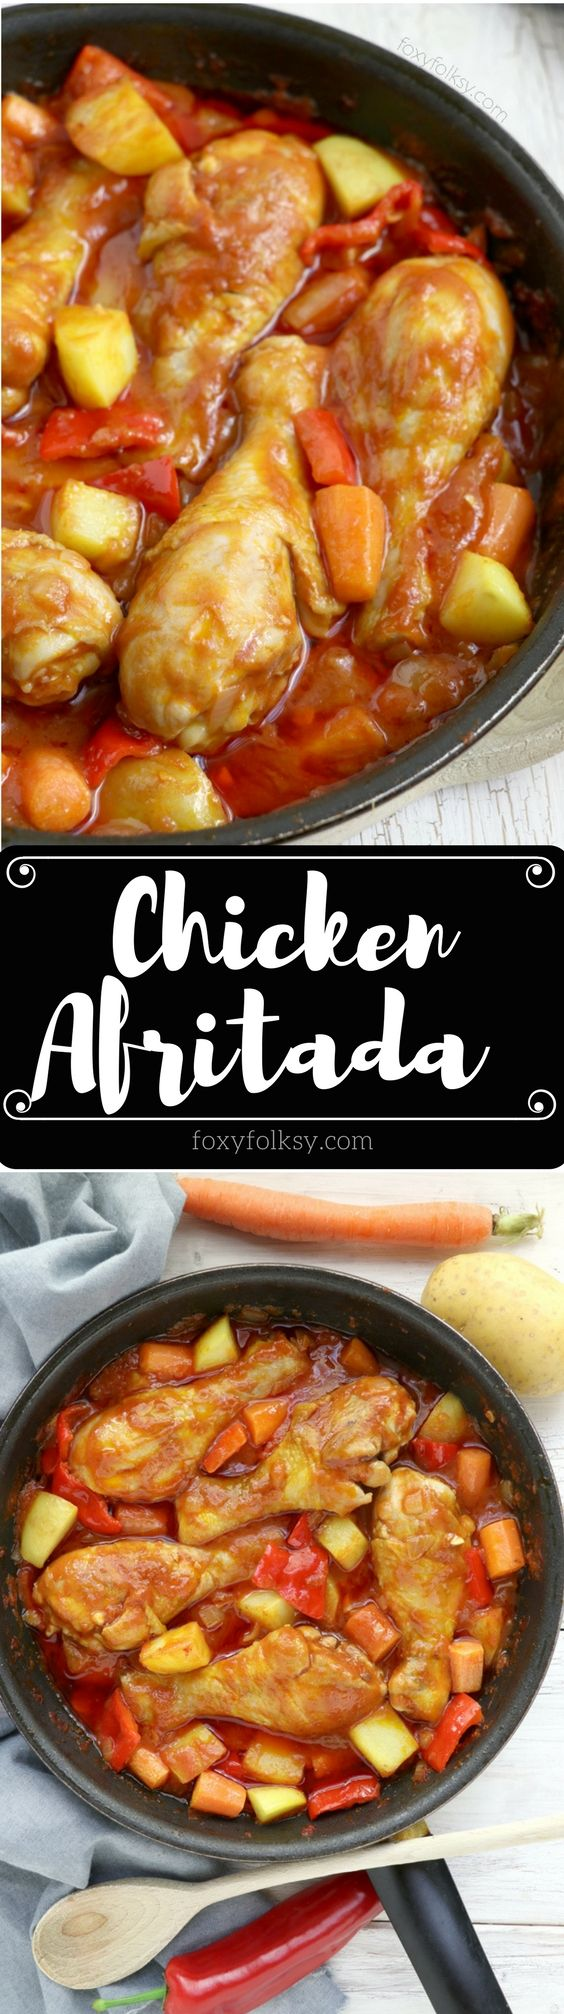 Try this Chicken Afritada recipe. A Filipino chicken stew in tomato sauce with carrots, potatoes and bell peppers. Simply delicious! | www.foxyfolksy.com